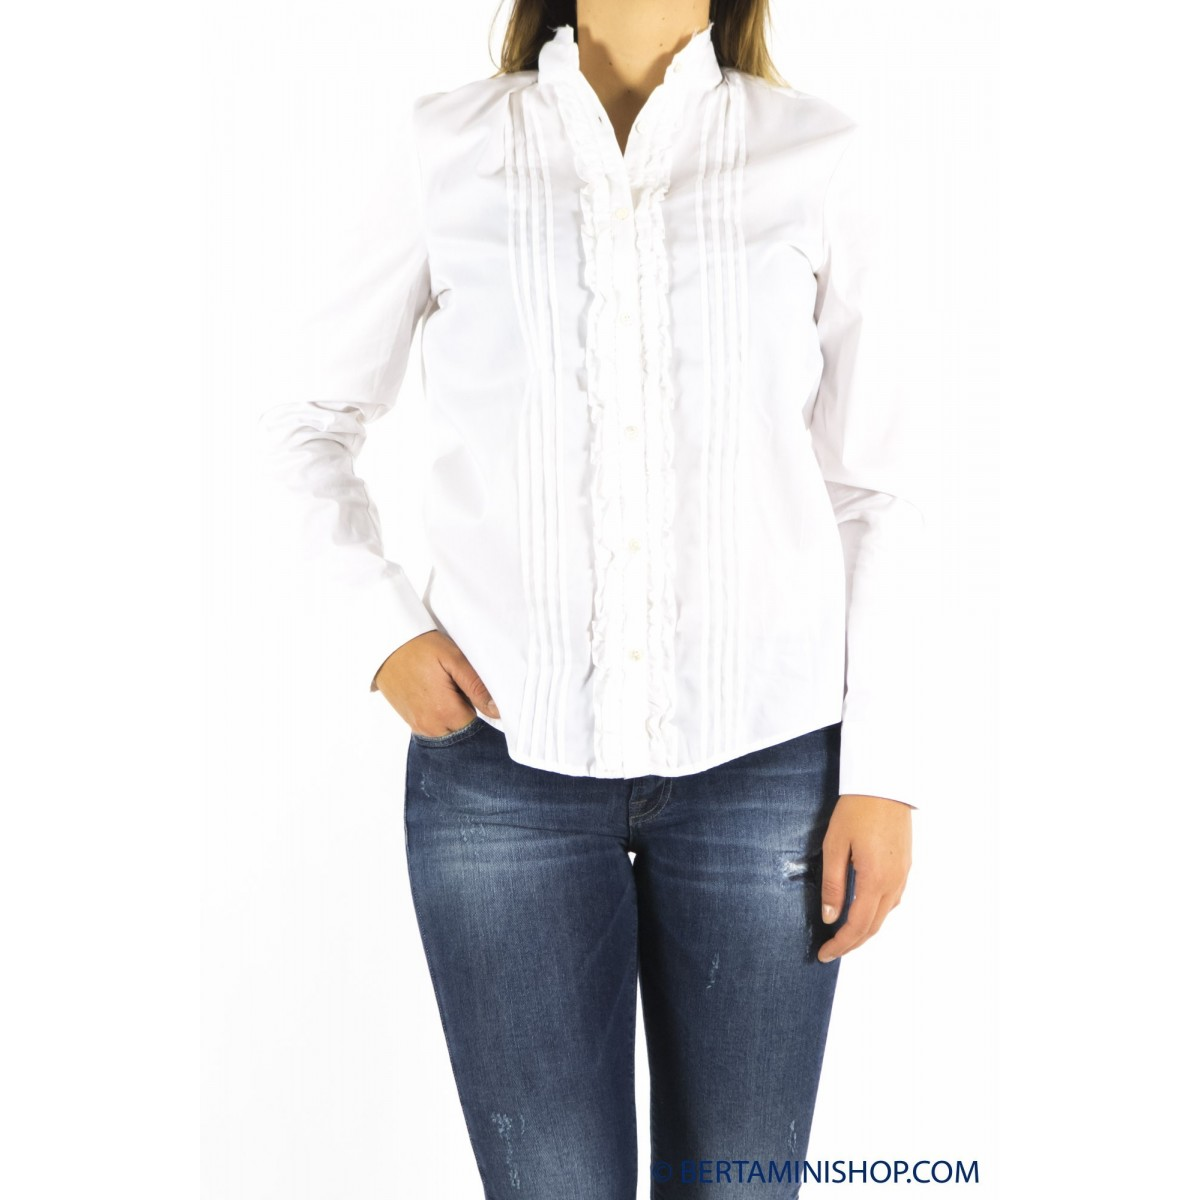 Pantalone donna Department five - D11c53 f1153 camicia strech 001 - bianco